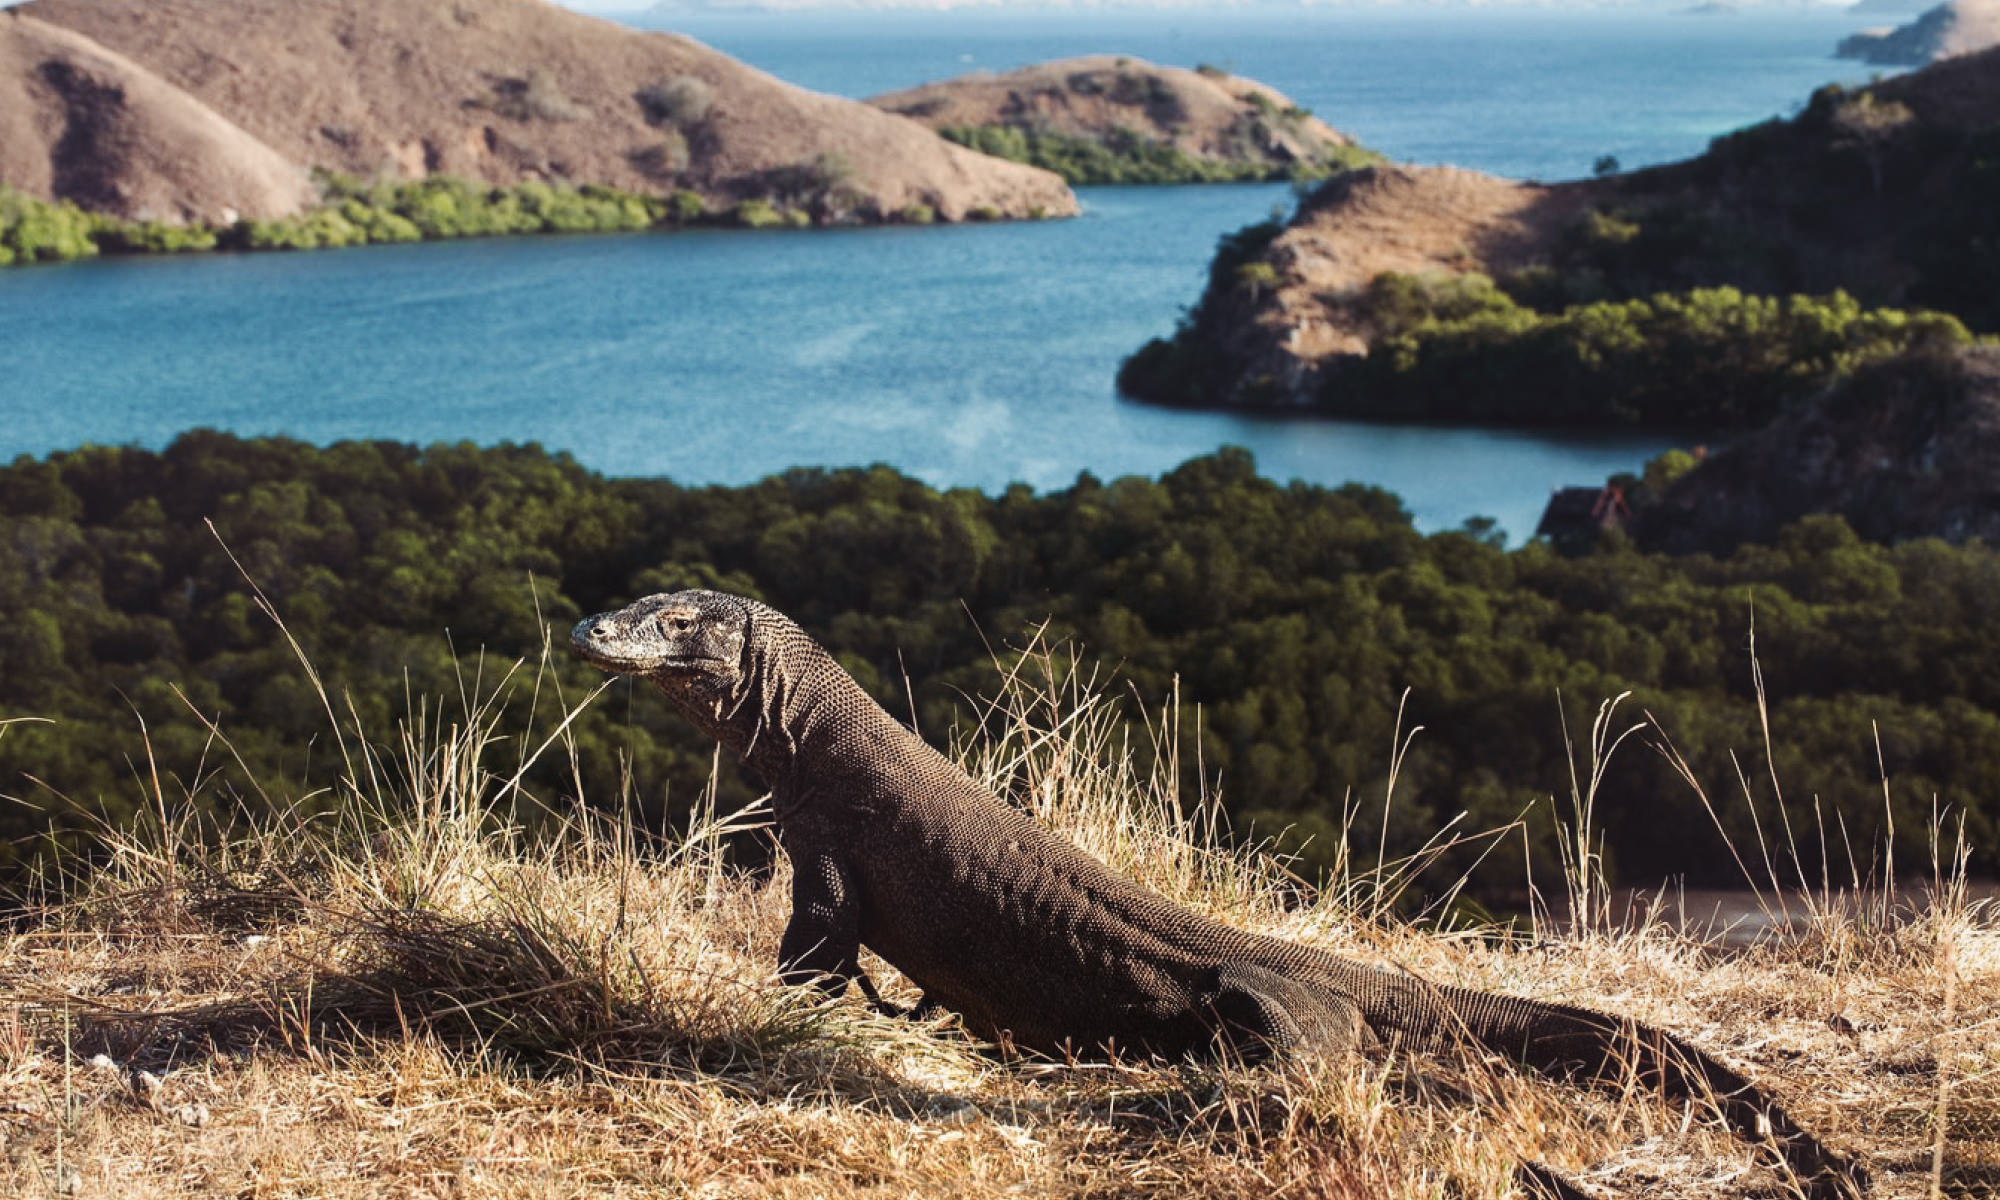 Waved to the Komodo Dragons.